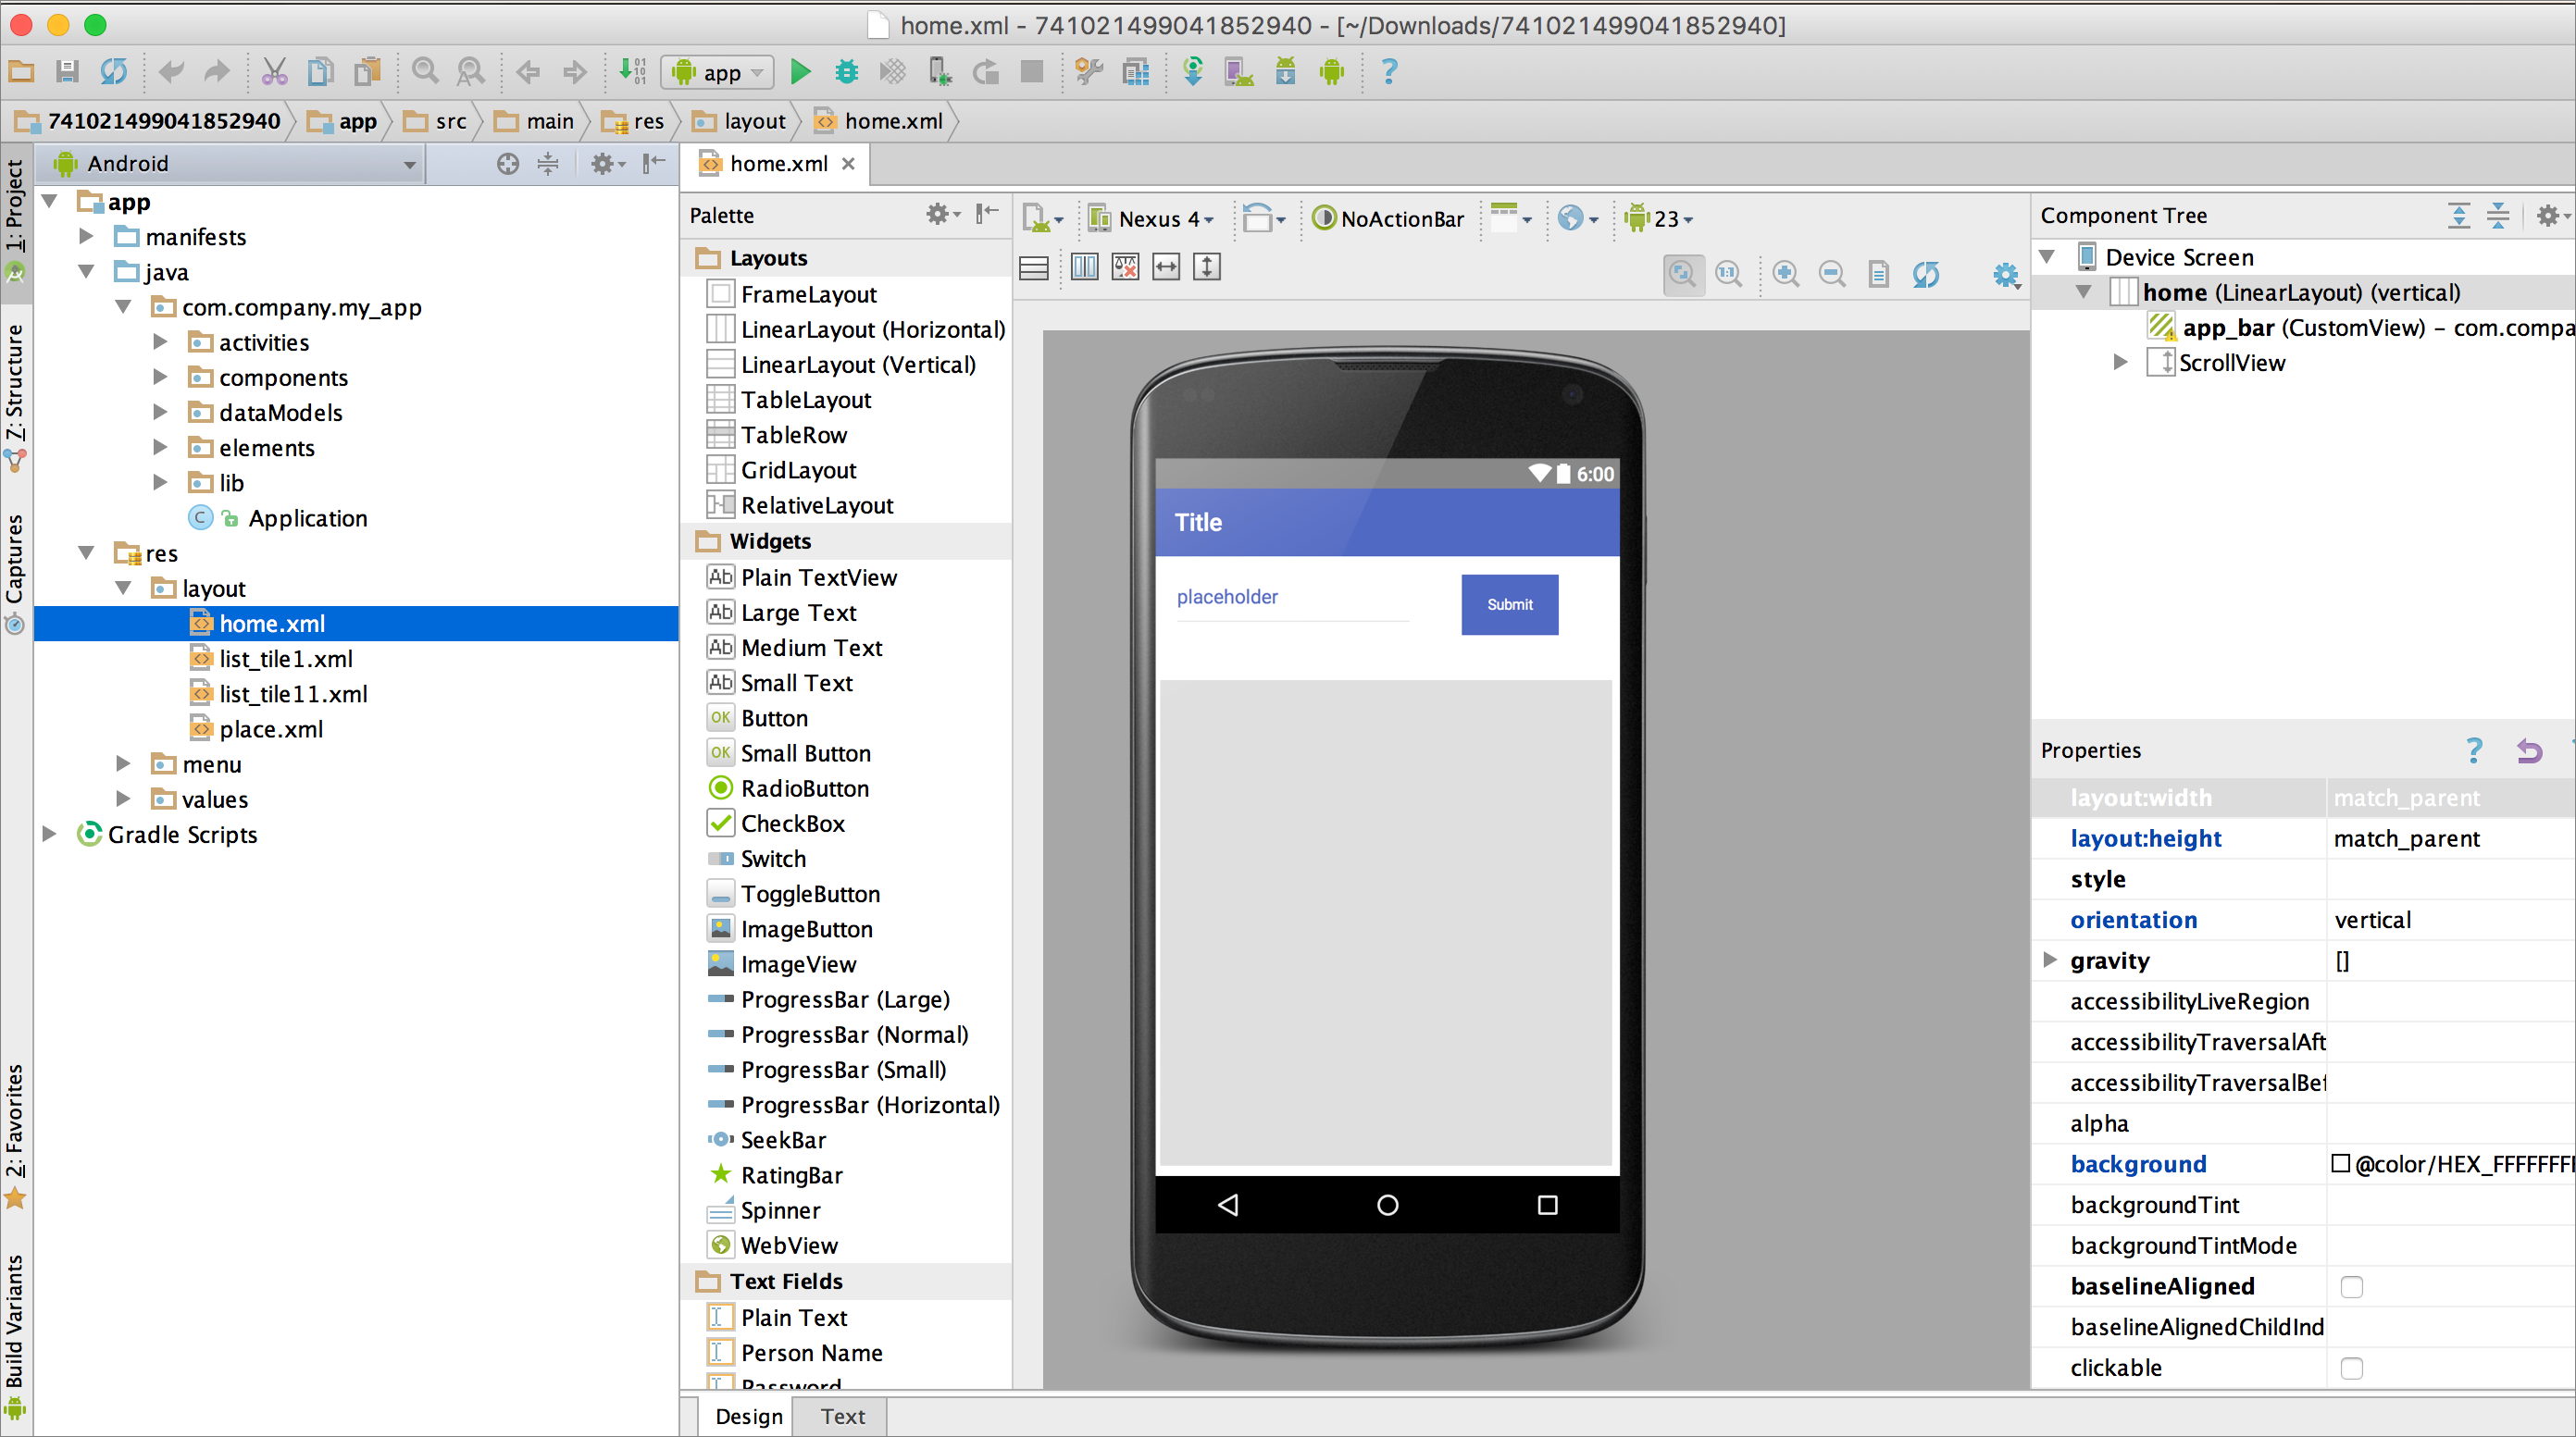 Importing Source Code into Android Studio - Dropsource Help Center